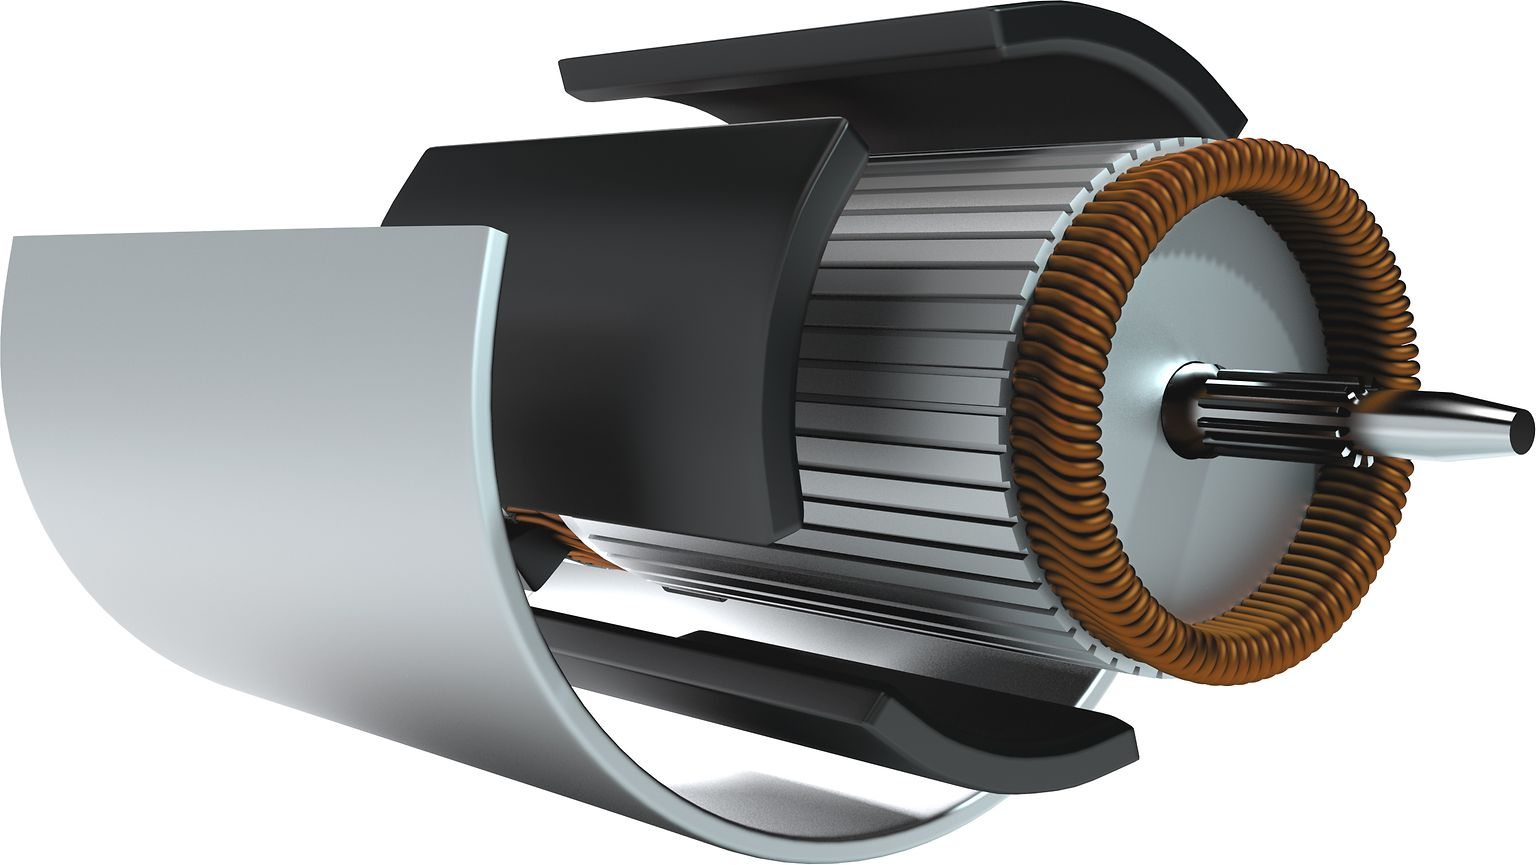 Henkel develops tailor-made solutions for various applications in electric motors through close cooperation with its customers